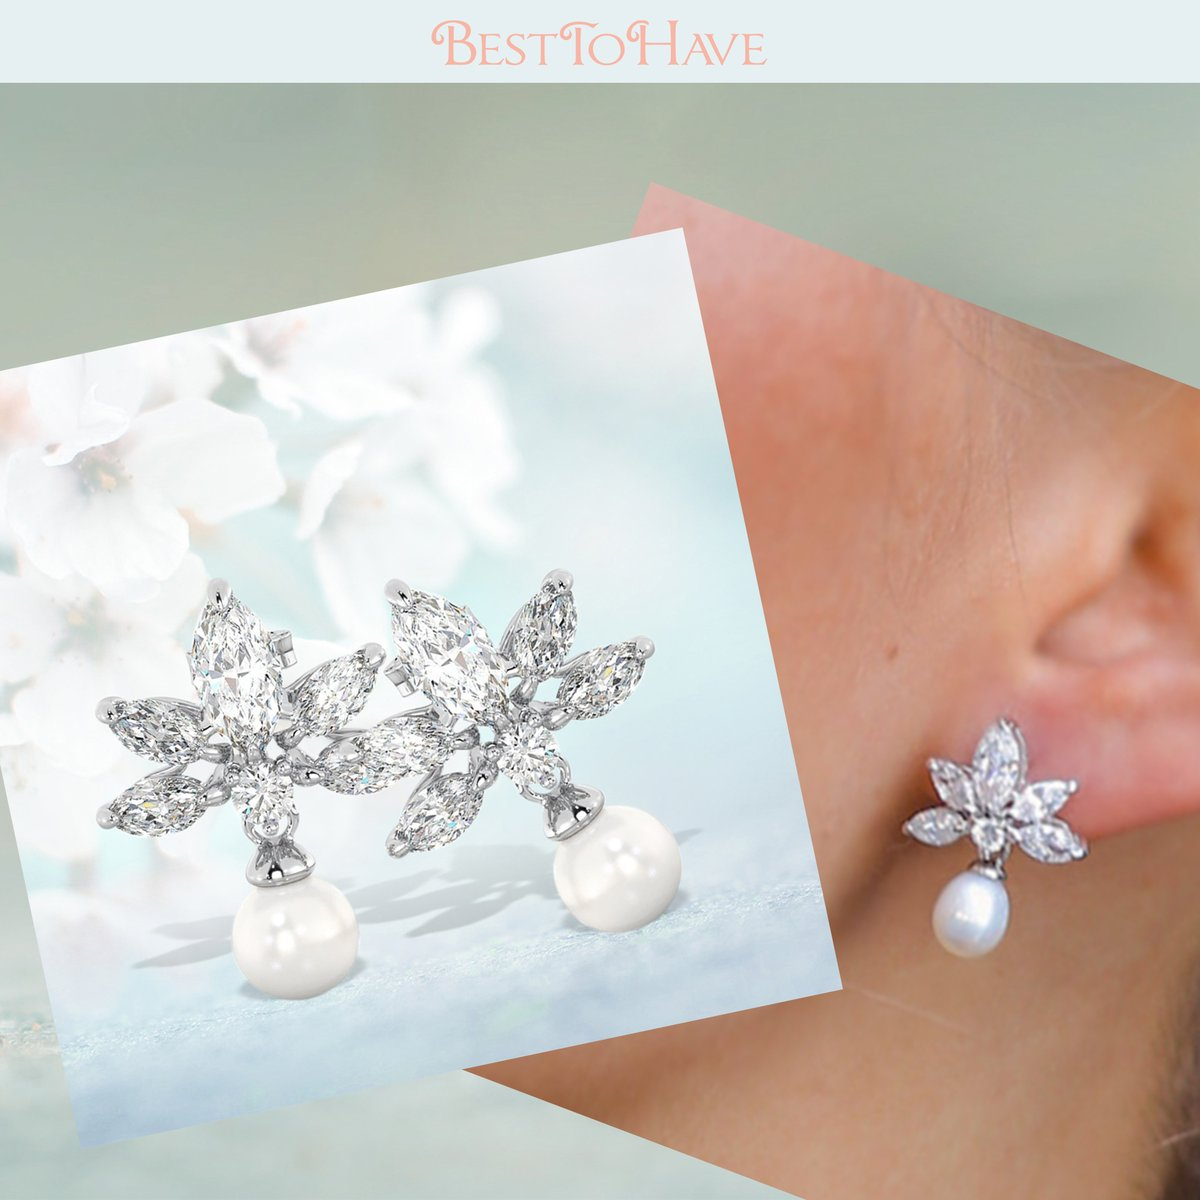 Special moments deserve special pieces to complement your outfit Code: 321 £29.99 Find them here: https://bit.ly/3en910n Shop more: https://www.besttohave.com/ #womenearrings #weddingearrings #lovejewelry #silverjewelry #sterlingsilver #cubiczirconia #fashion #besttohavepic.twitter.com/Jv8U3au73X